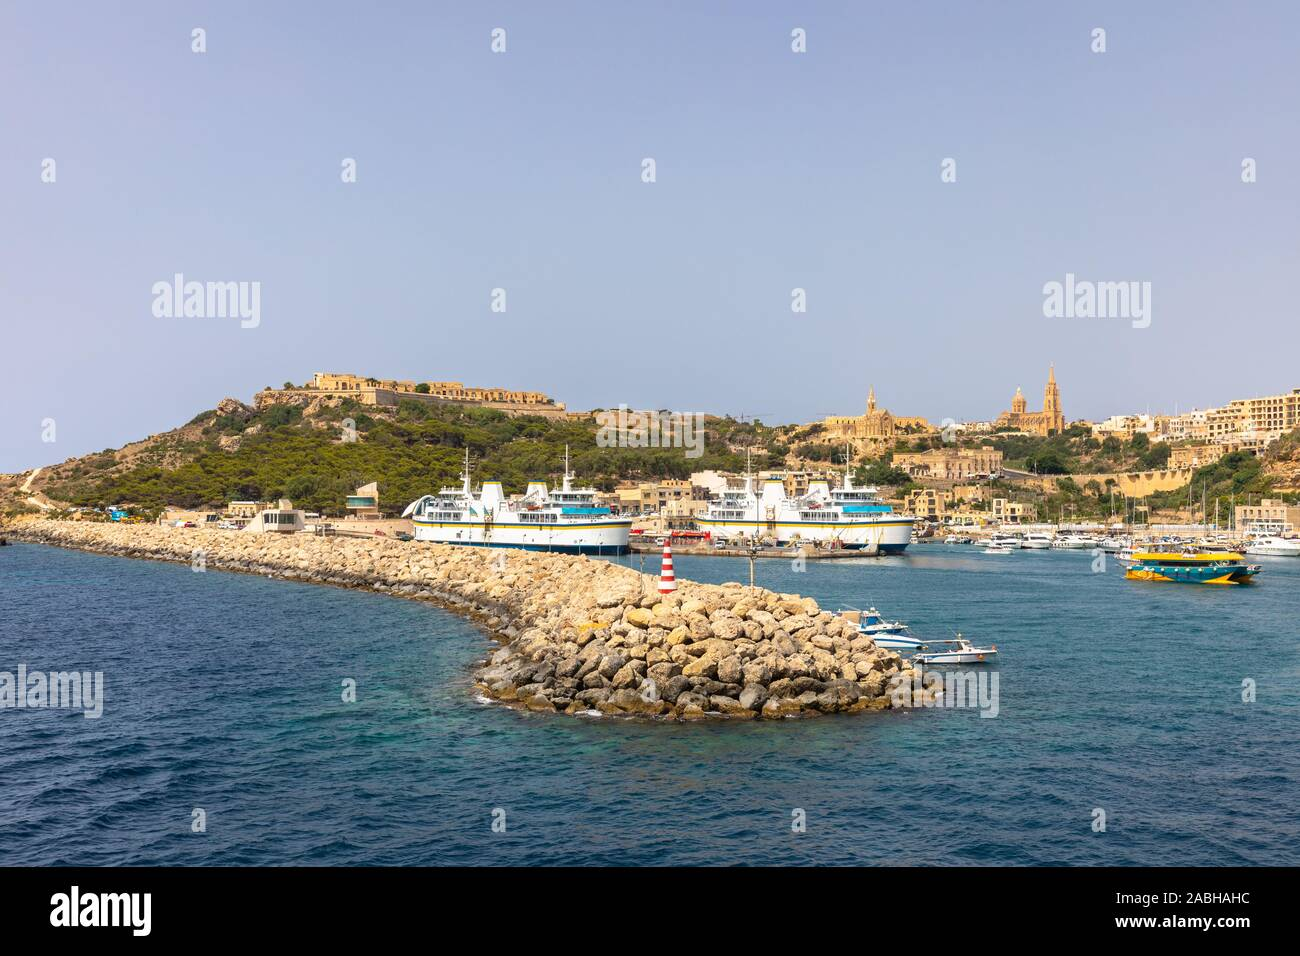 Panorama view of Gozo island of Malta from the Mgarr habor on a sunny day Stock Photo